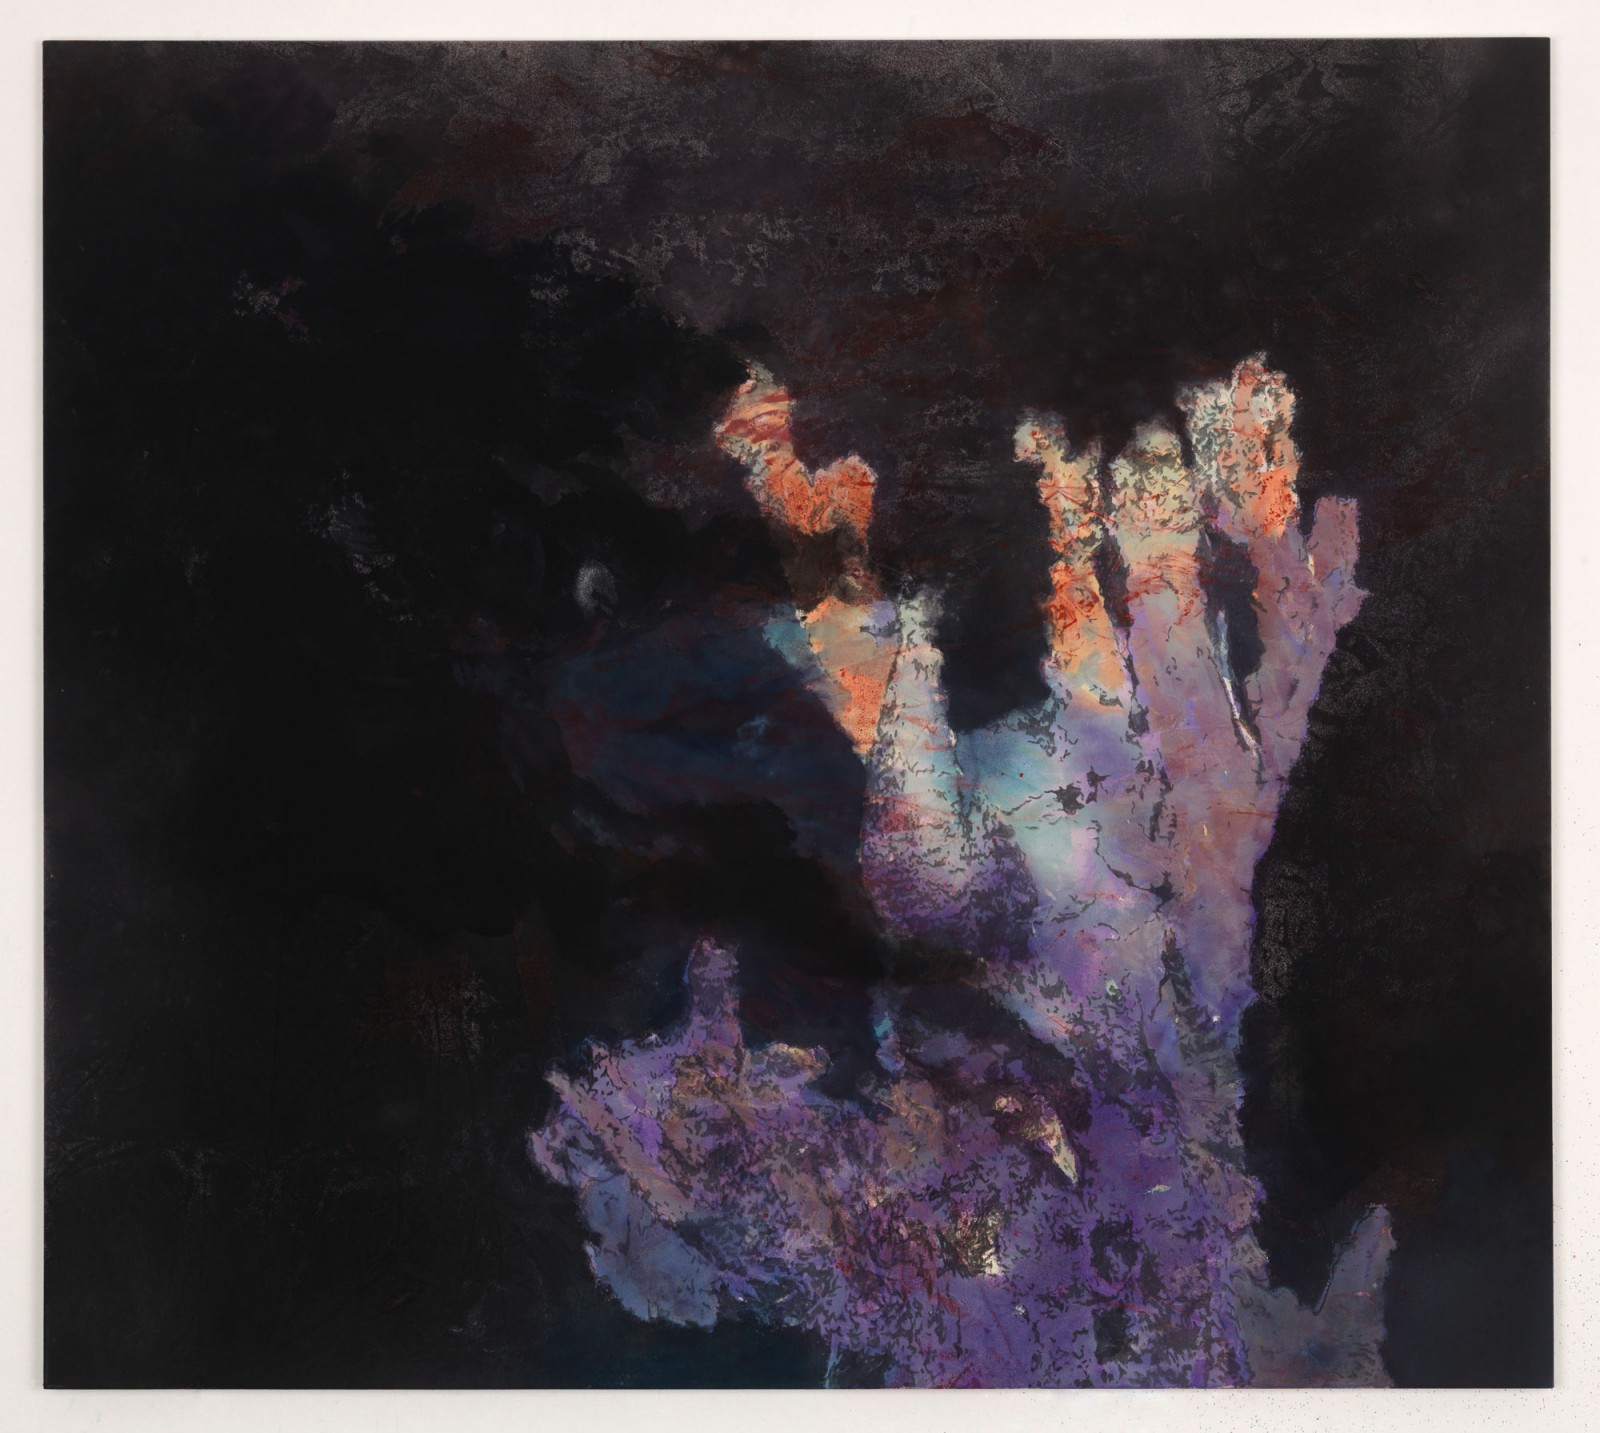 Kim Nekarda: I shall leave the world, I feel, with more satisfaction for having come to know you, 2014, vinyl color & body print on cotton, 170 x 190 cm